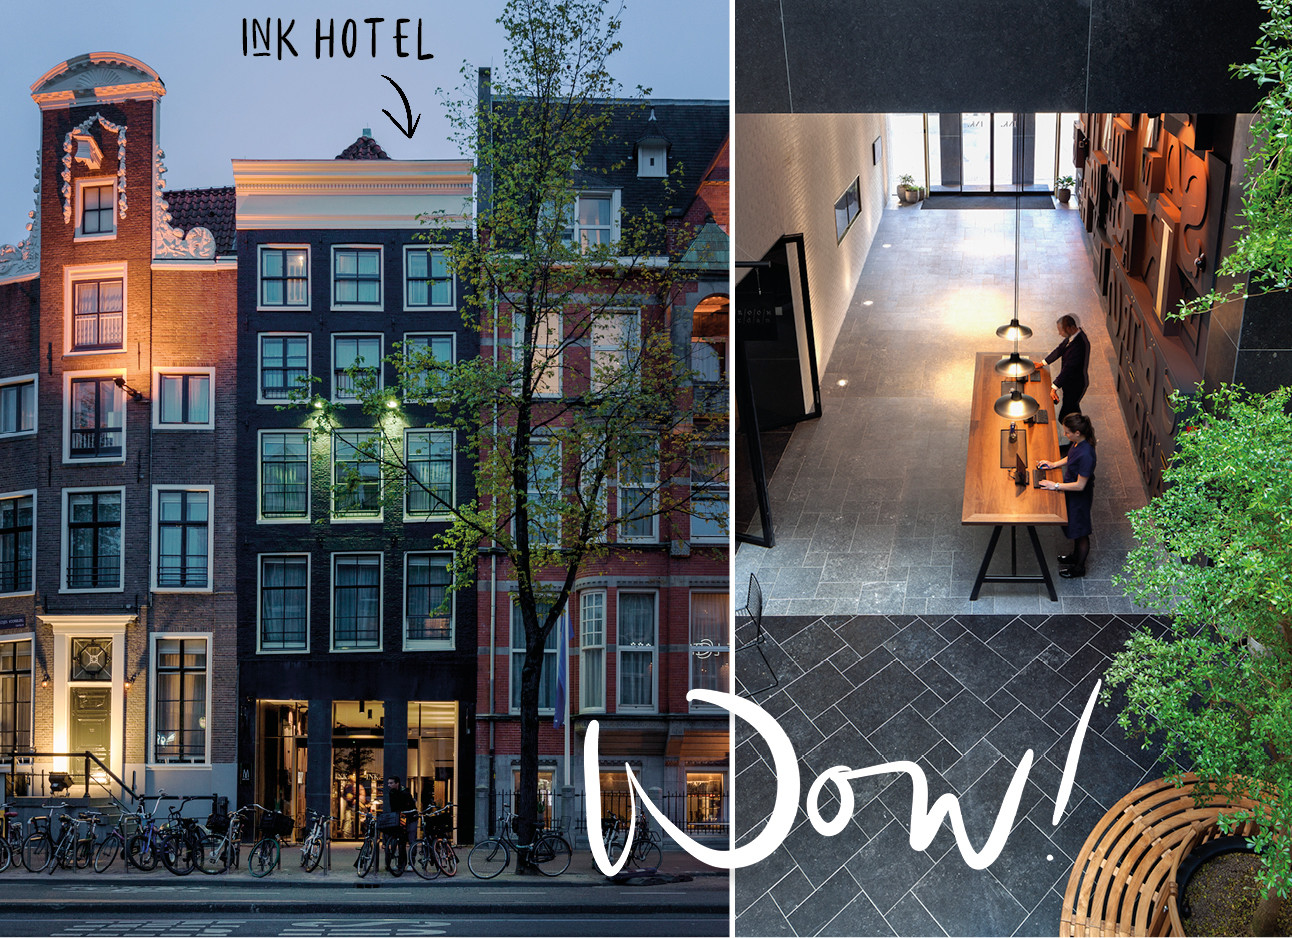 INK hotel